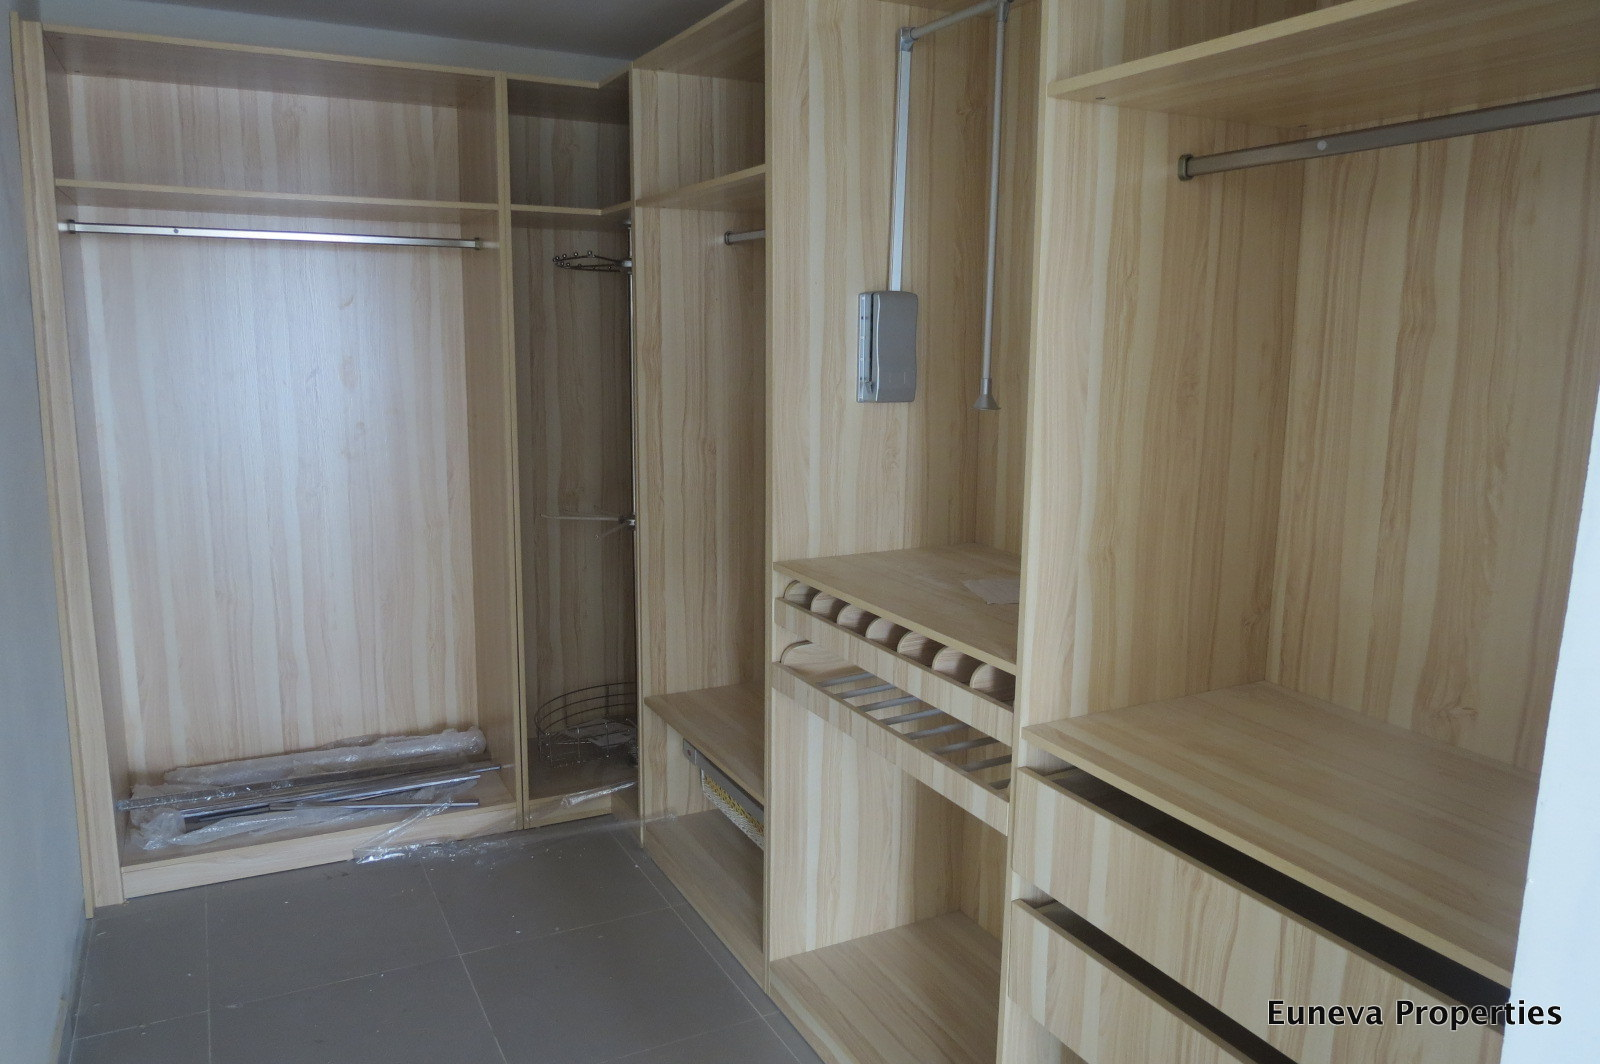 Magnificent Contemporary 4 bedroom Detached House in Lekki Phase 1 with a Penthouse